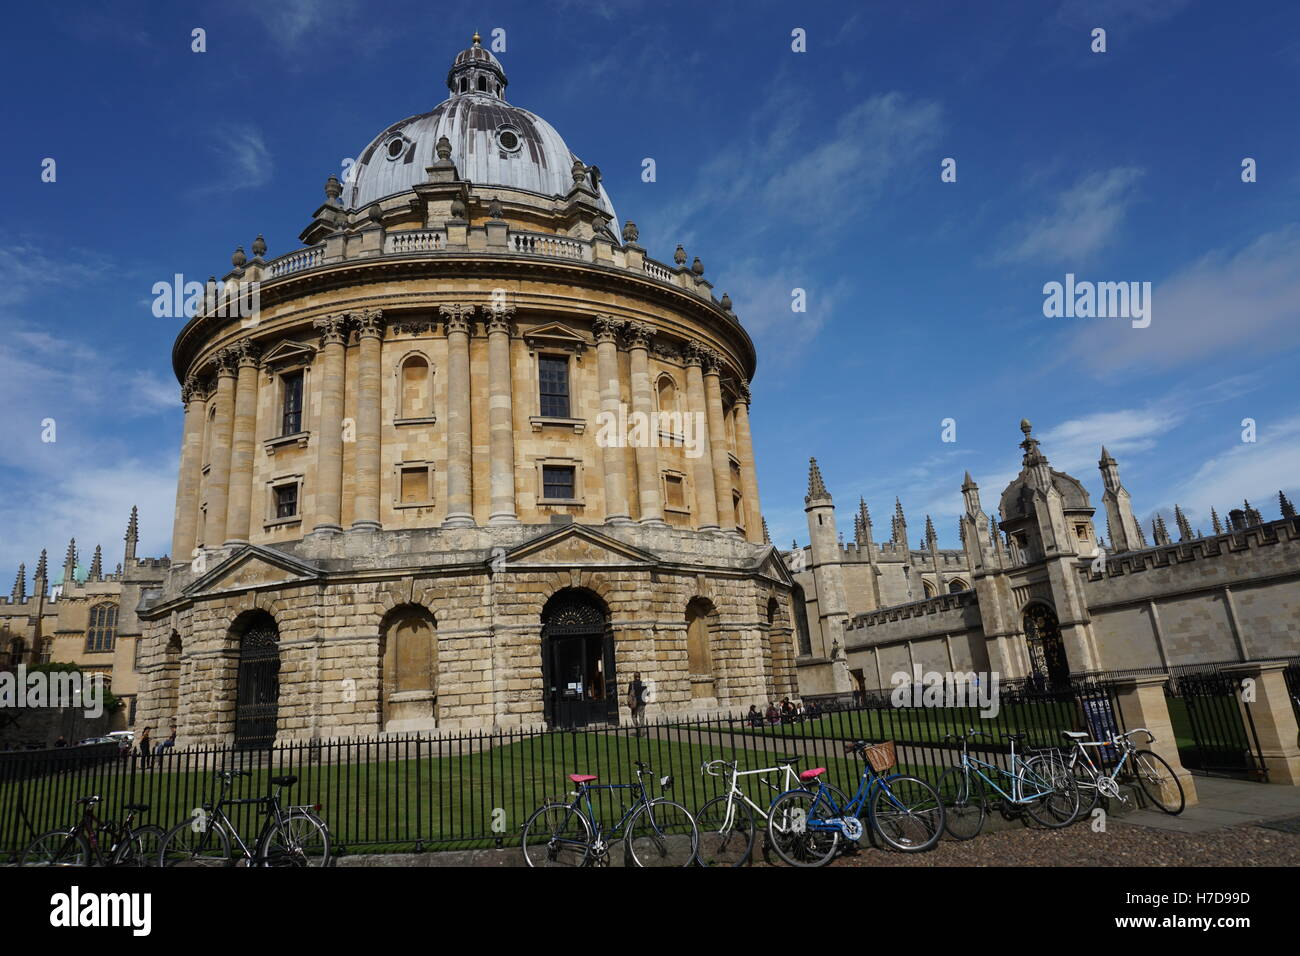 Oxford University Radcliffe Camera - Stock Image